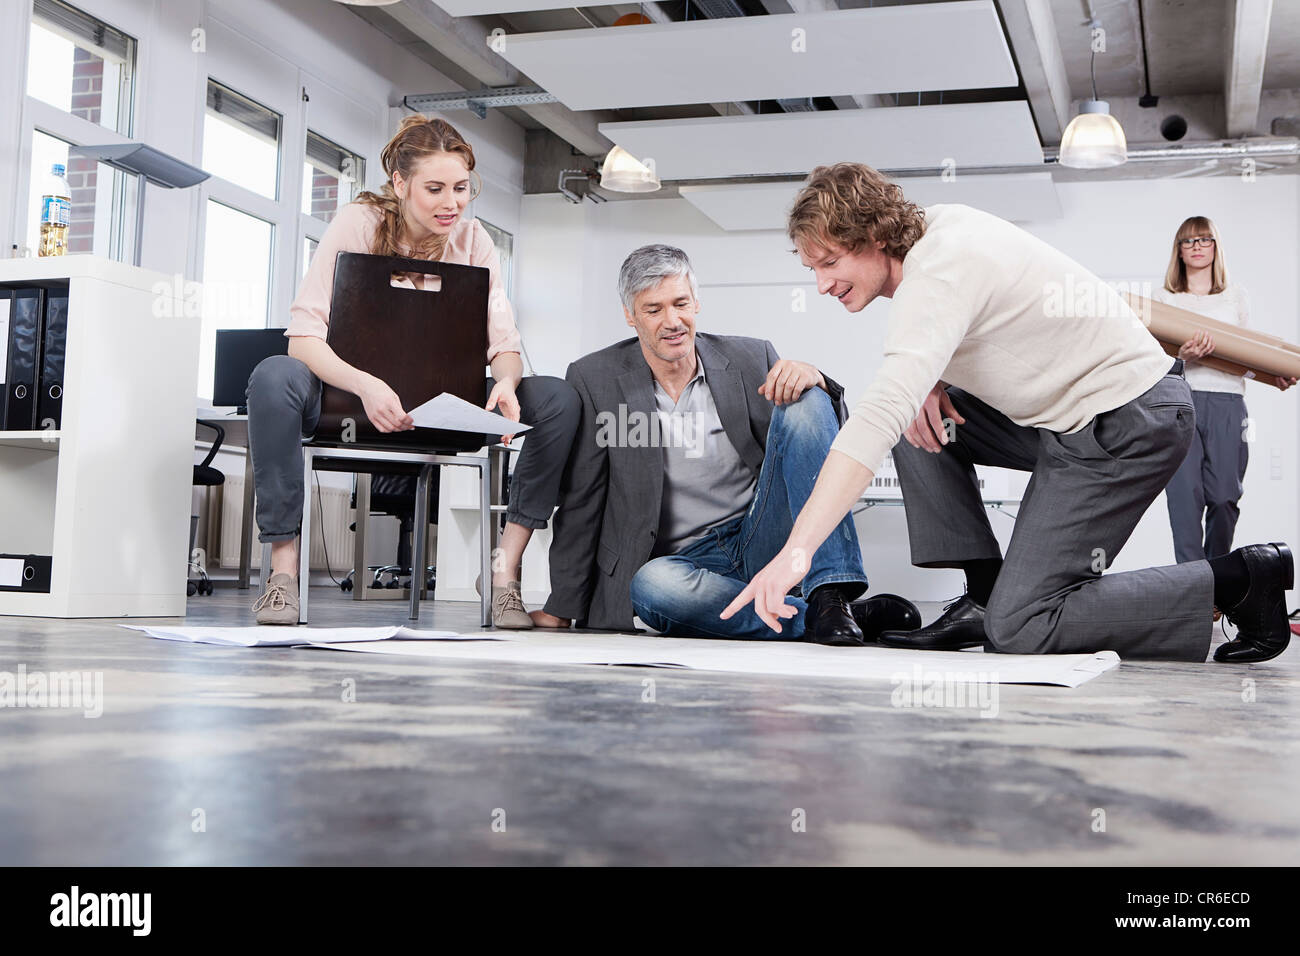 Germany, Bavaria, Munich, Man explaining plan to colleagues in office - Stock Image